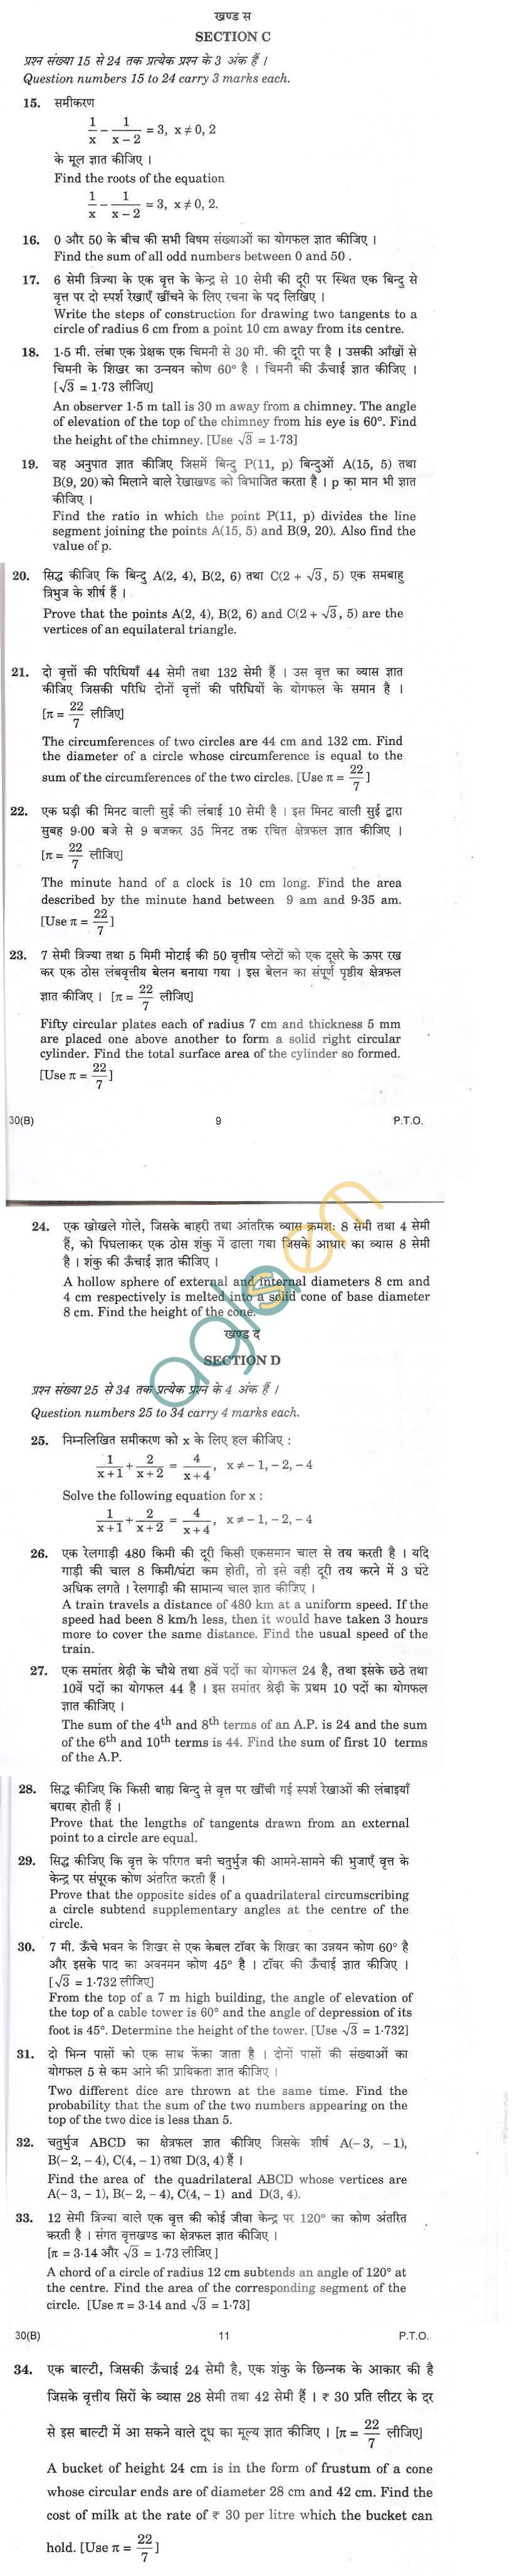 CBSE Board Exam Class 10 SA2 Sample Question Paper – Mathematics for Blind Candidates